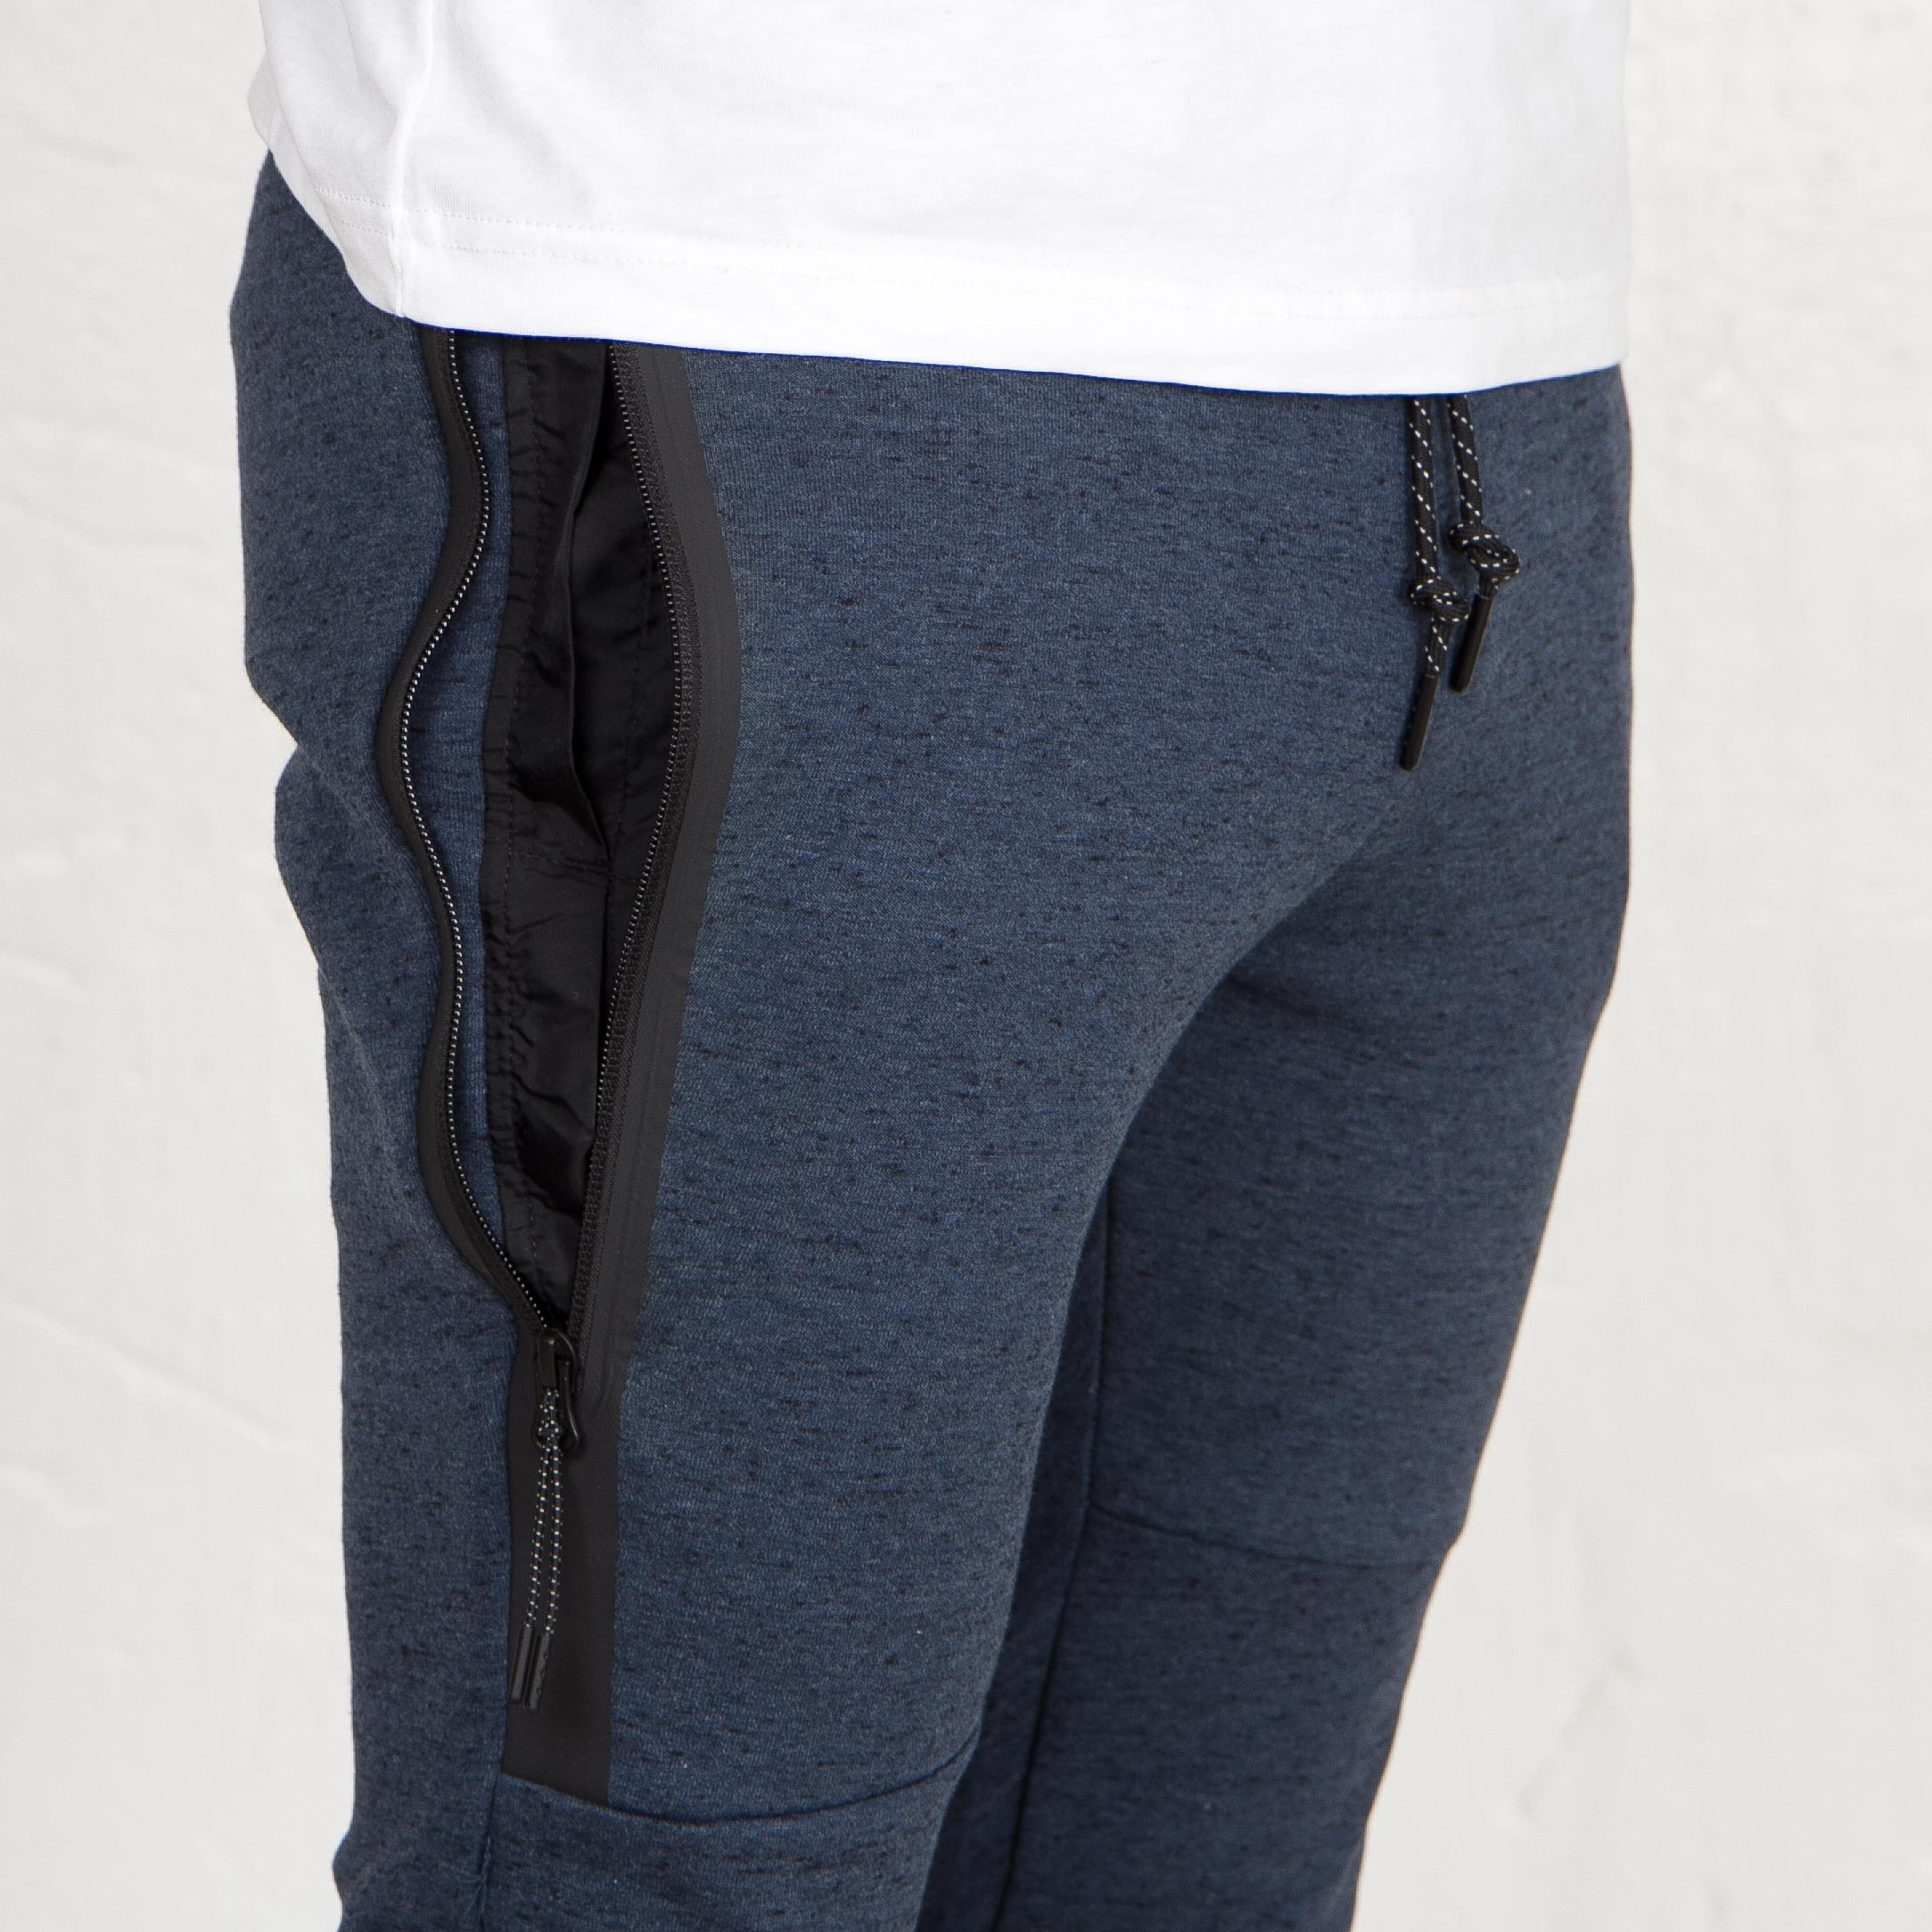 97911d175019 Nike Tech Fleece Pant - 545343-460 - Sneakersnstuff